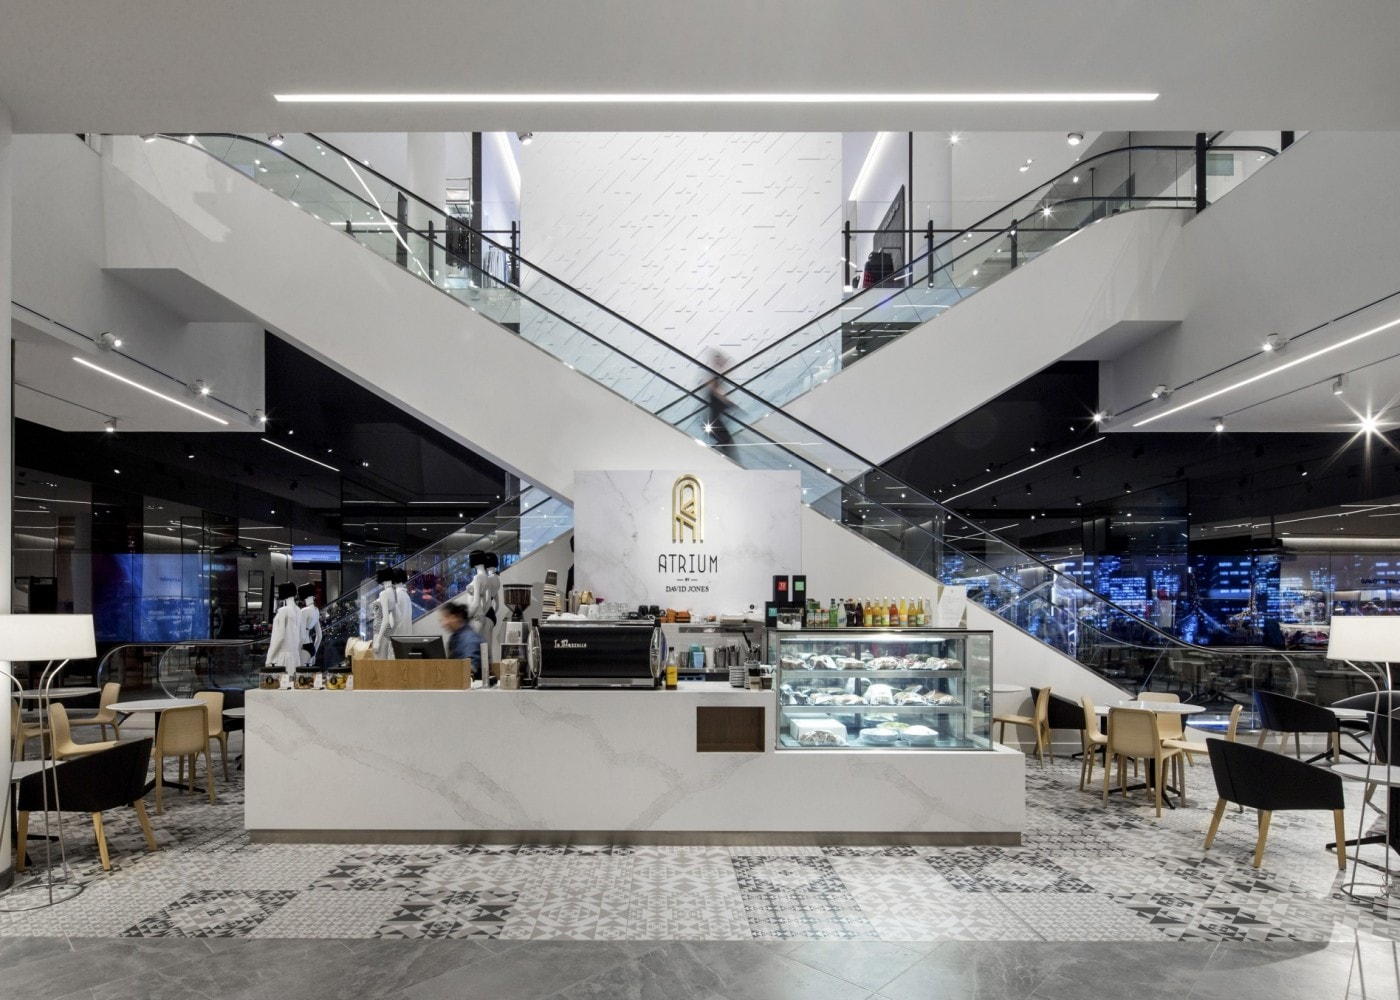 hospitality lighting design: Atrium